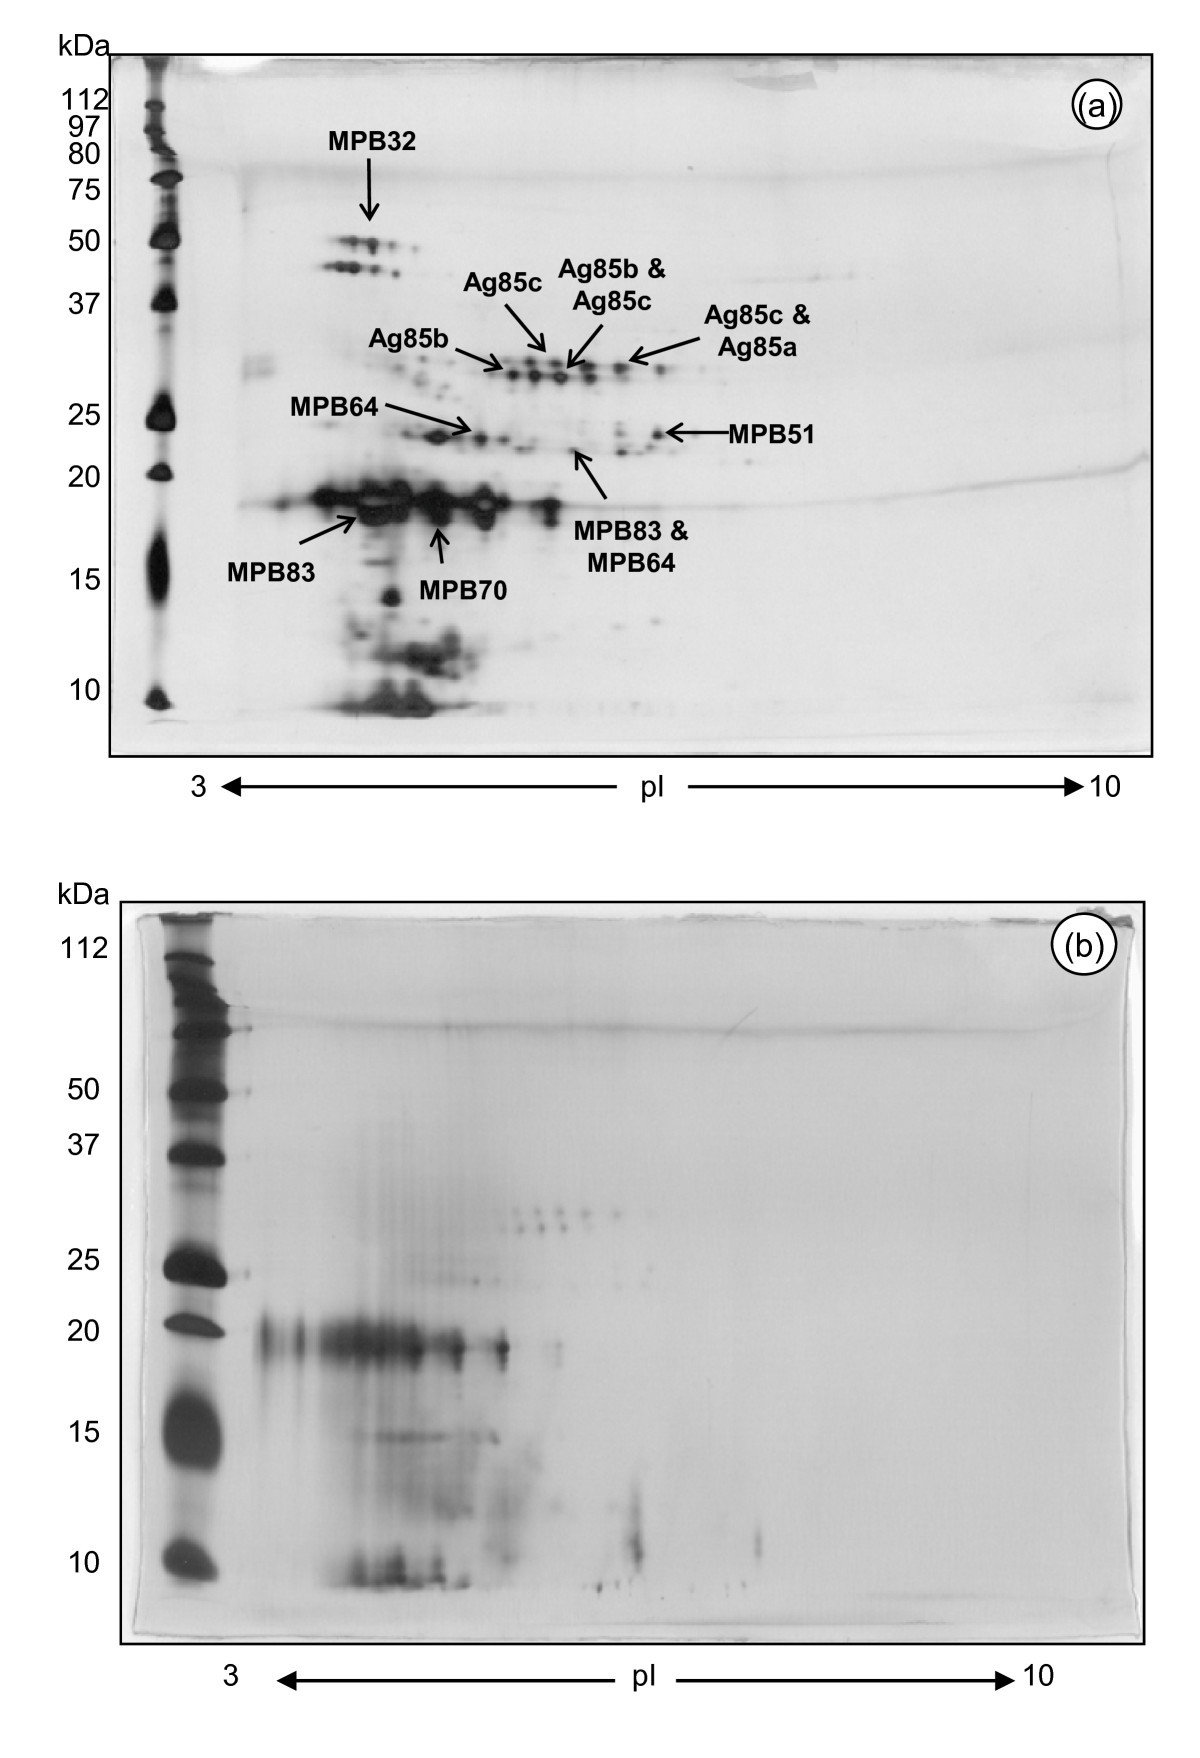 http://static-content.springer.com/image/art%3A10.1186%2F1746-6148-6-50/MediaObjects/12917_2010_Article_230_Fig3_HTML.jpg